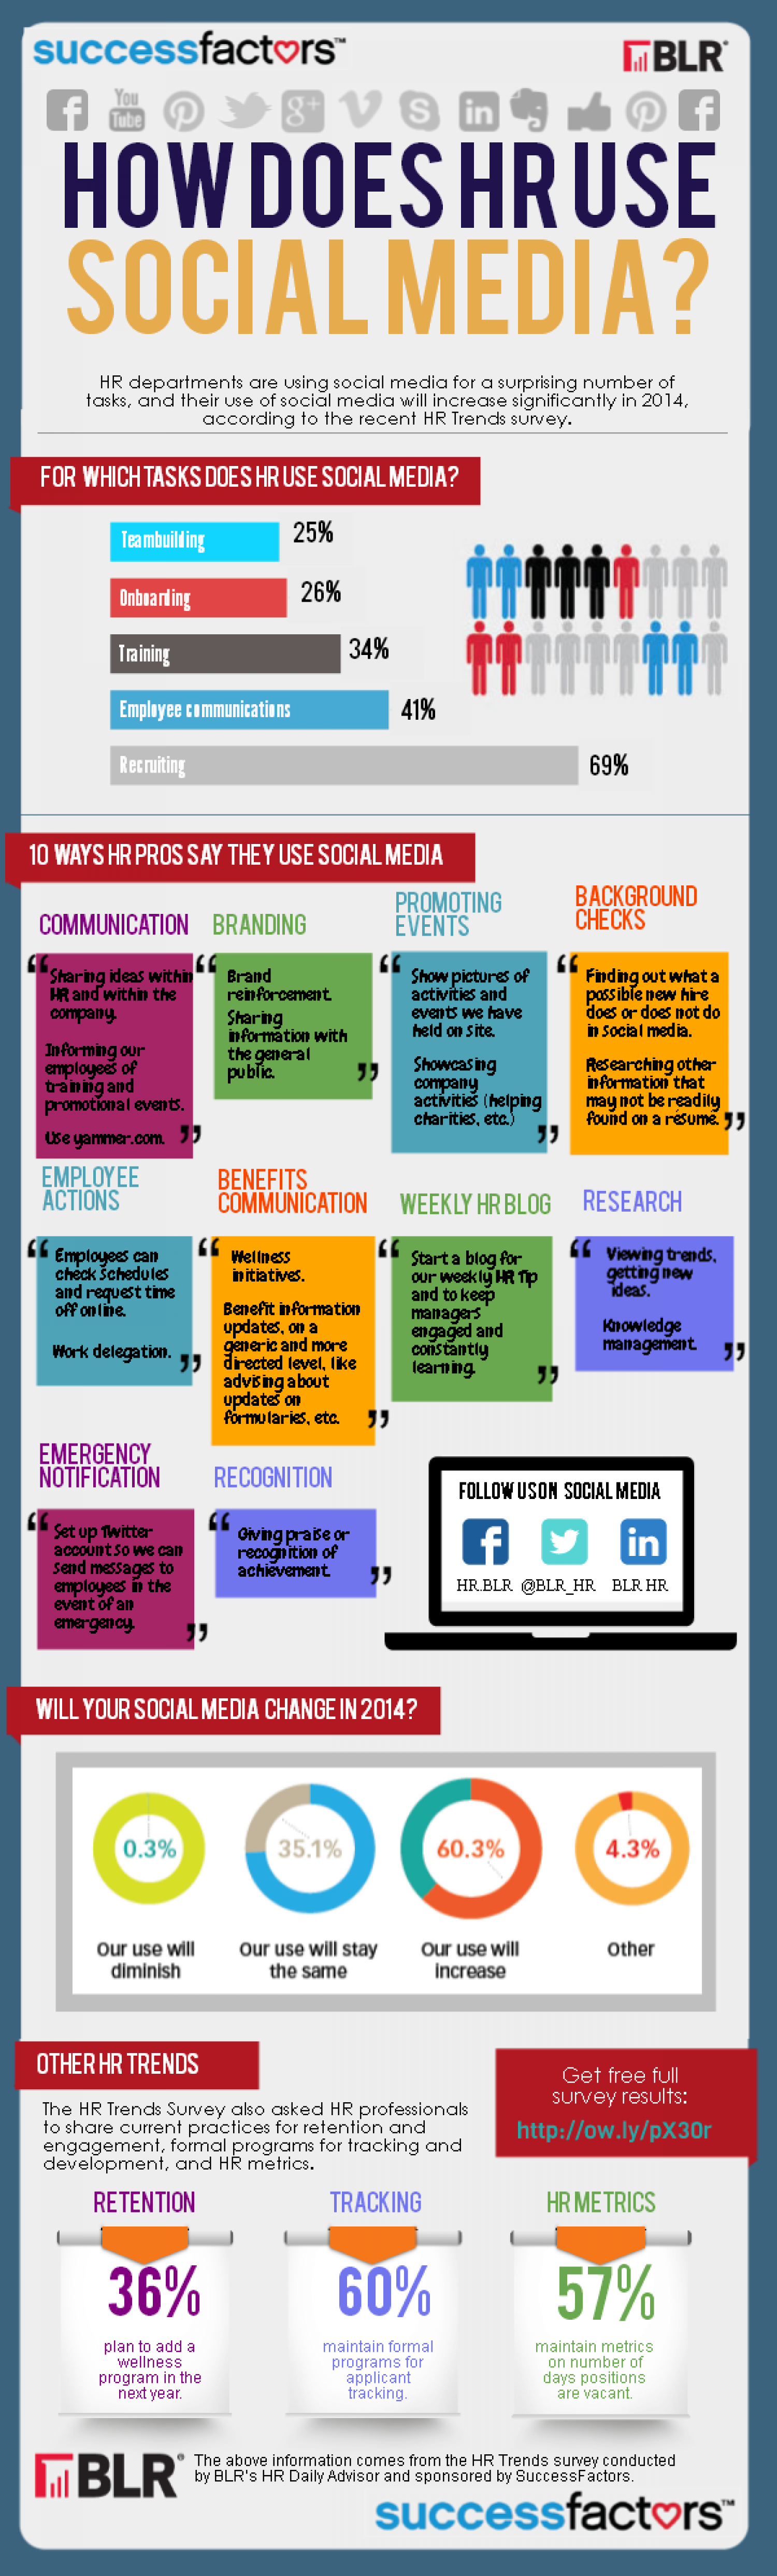 How Does HR Use Social Media? Infographic